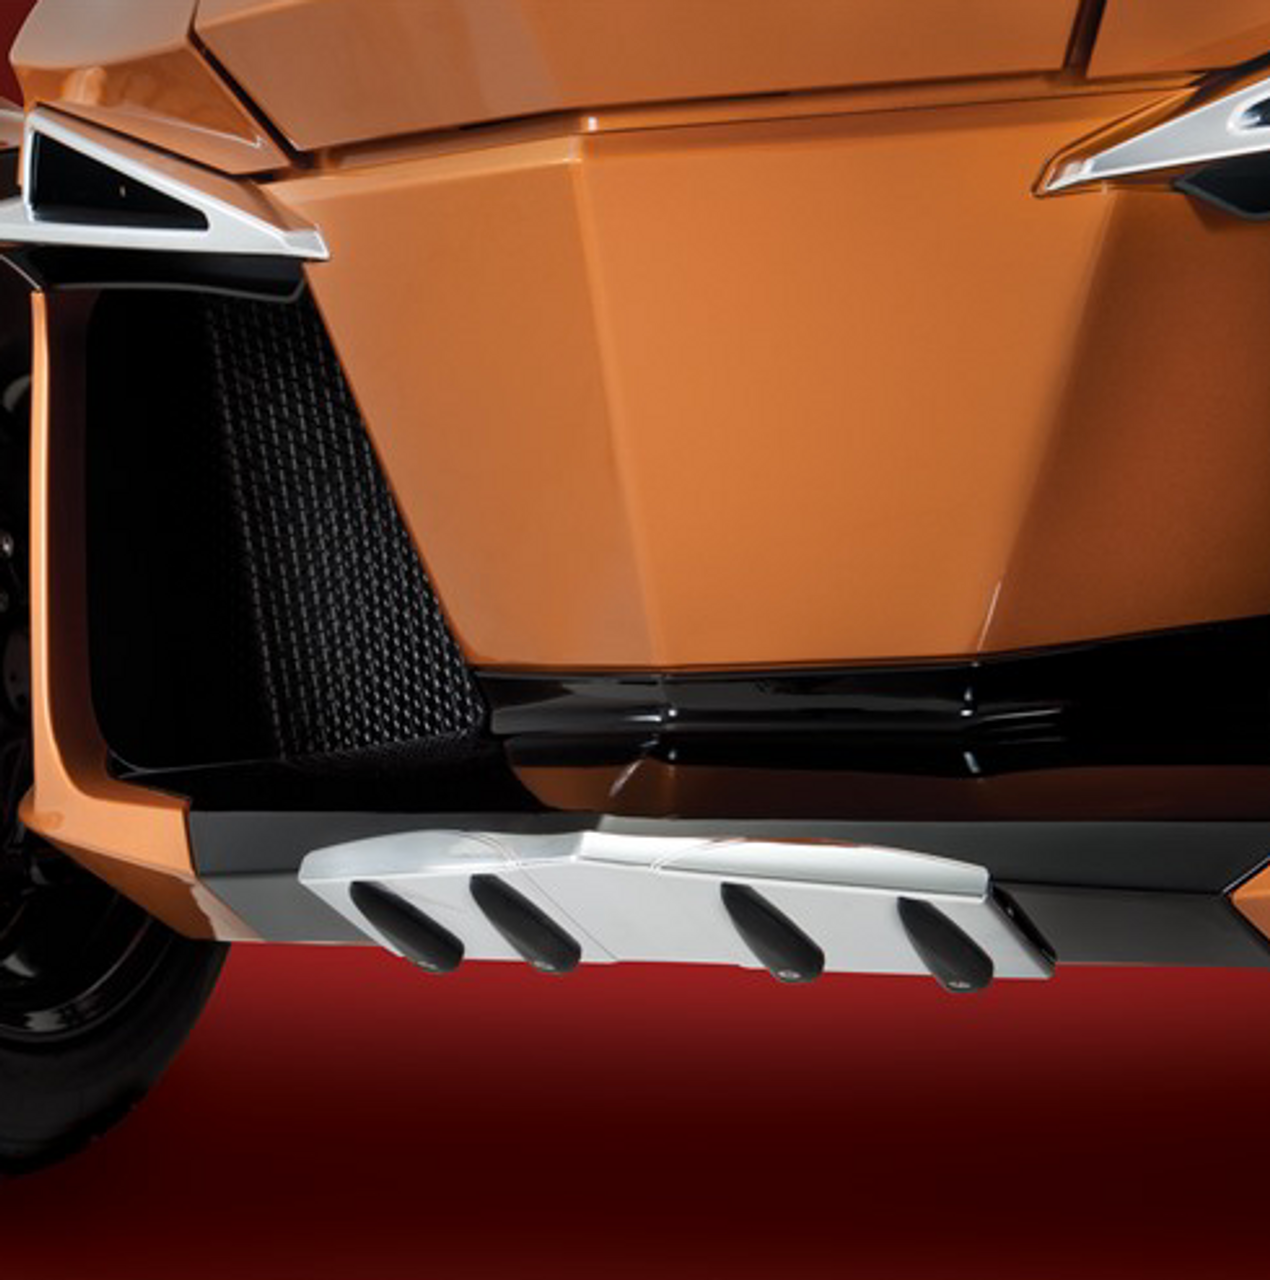 RT Chrome Wear Bar Accent (Front nose protection) 2014-2019